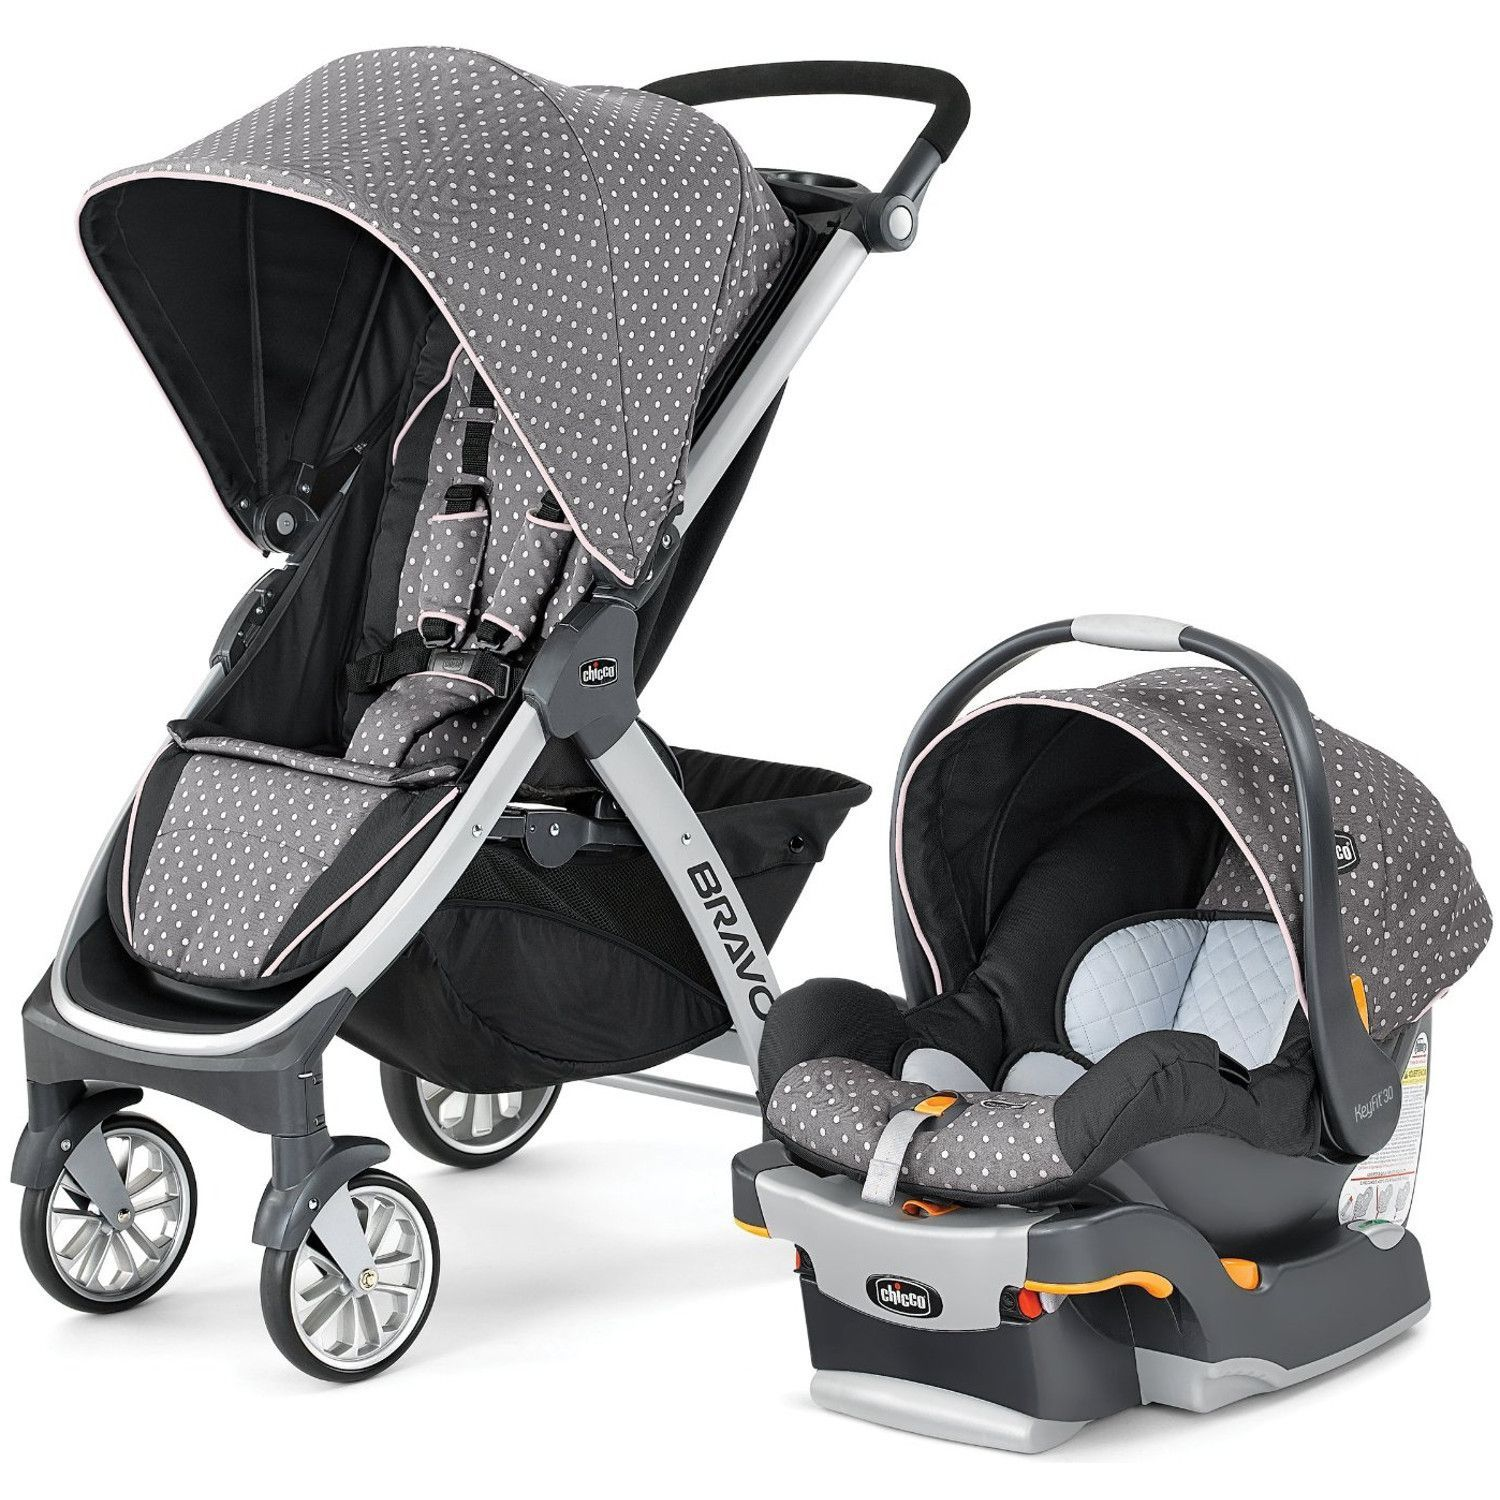 The Chicco Bravo Stroller is the new, innovative trimodal